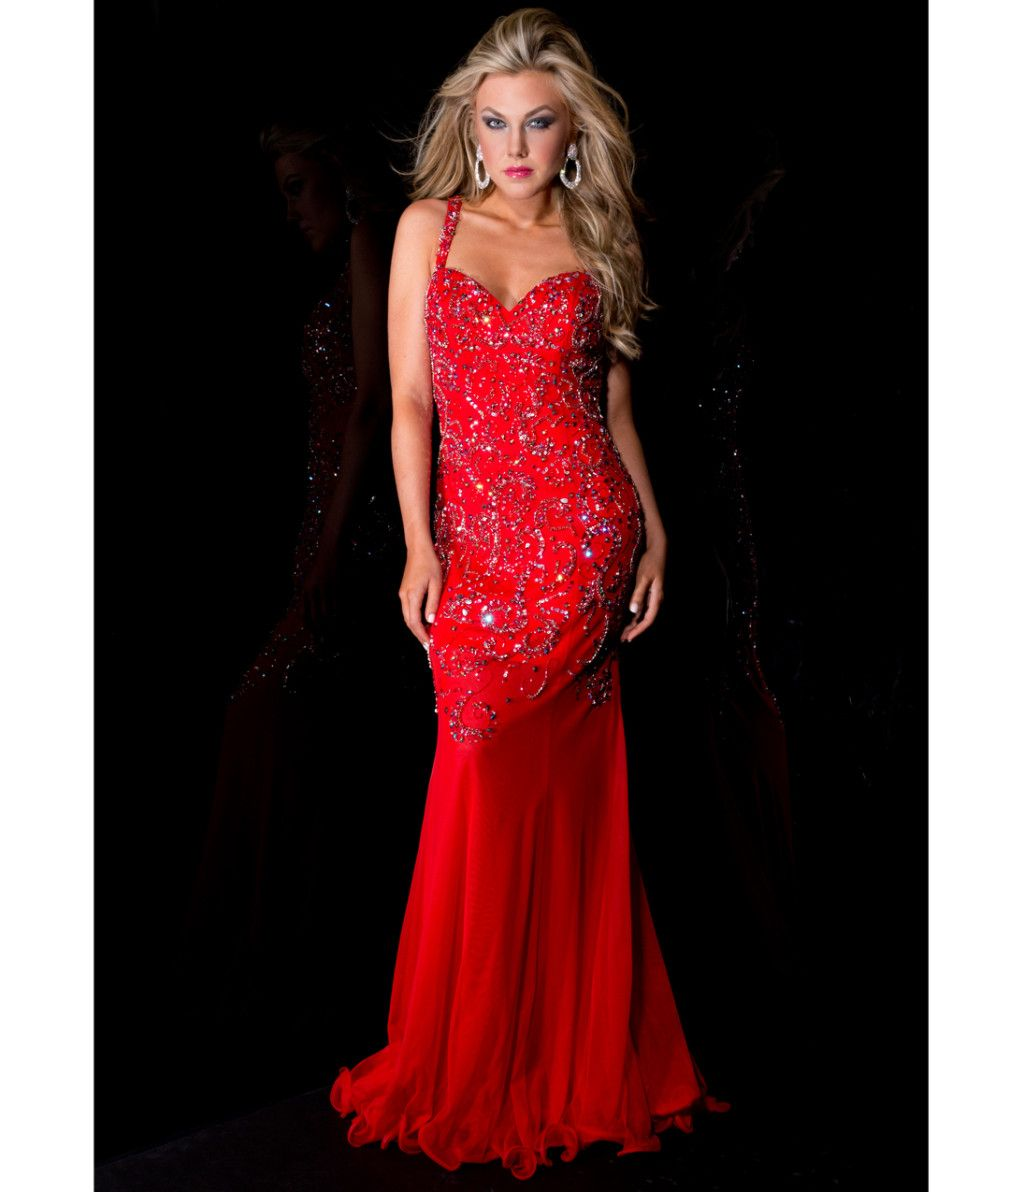 Vintage Prom Dresses Under 100 Red | Prom Dresses Design | Pinterest ...